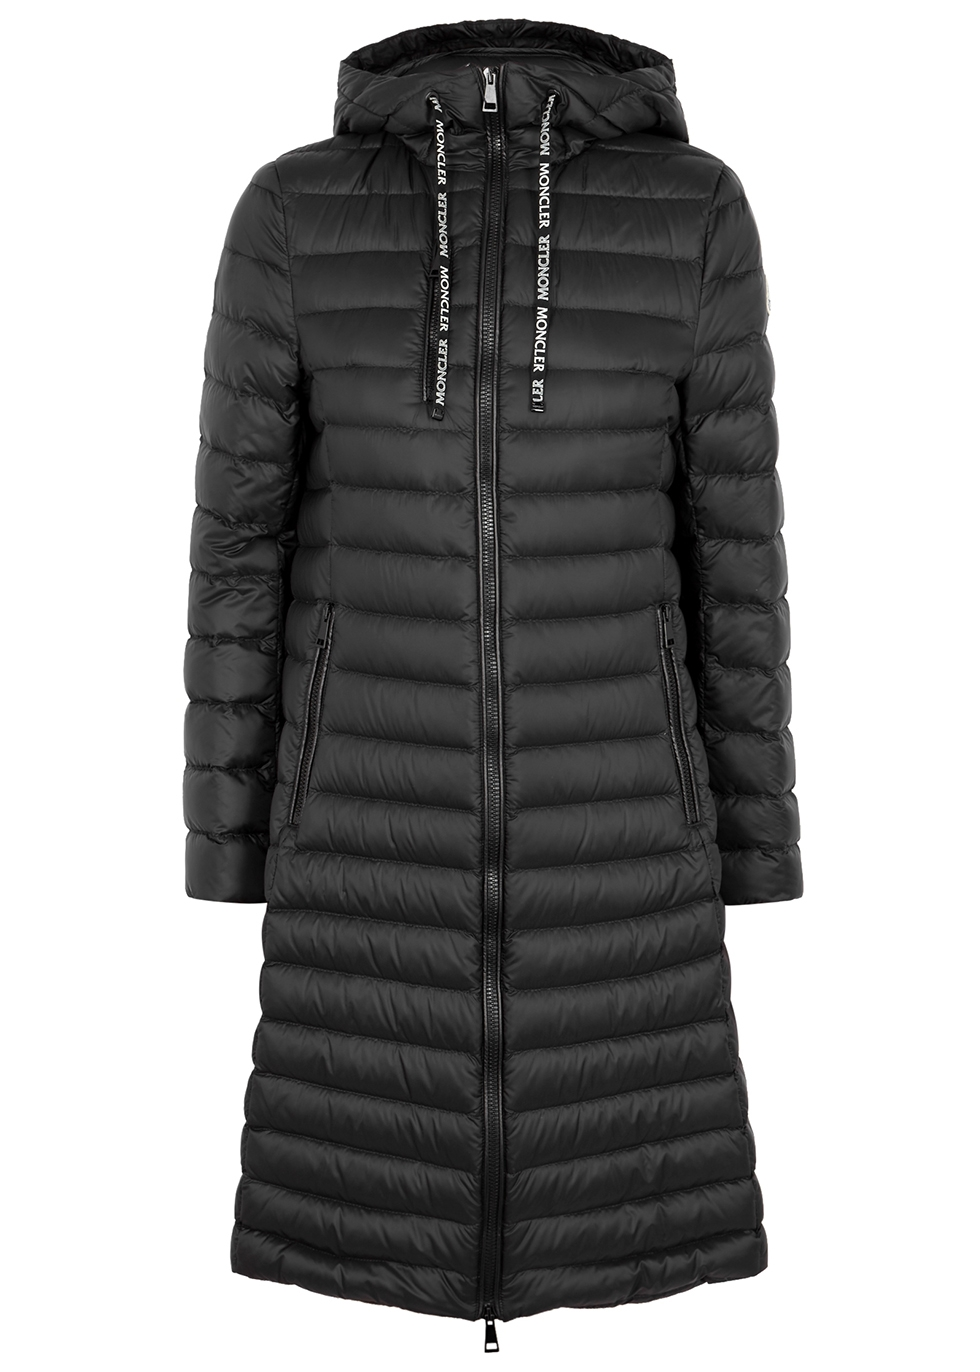 moncler womens harvey nichols rh harveynichols com